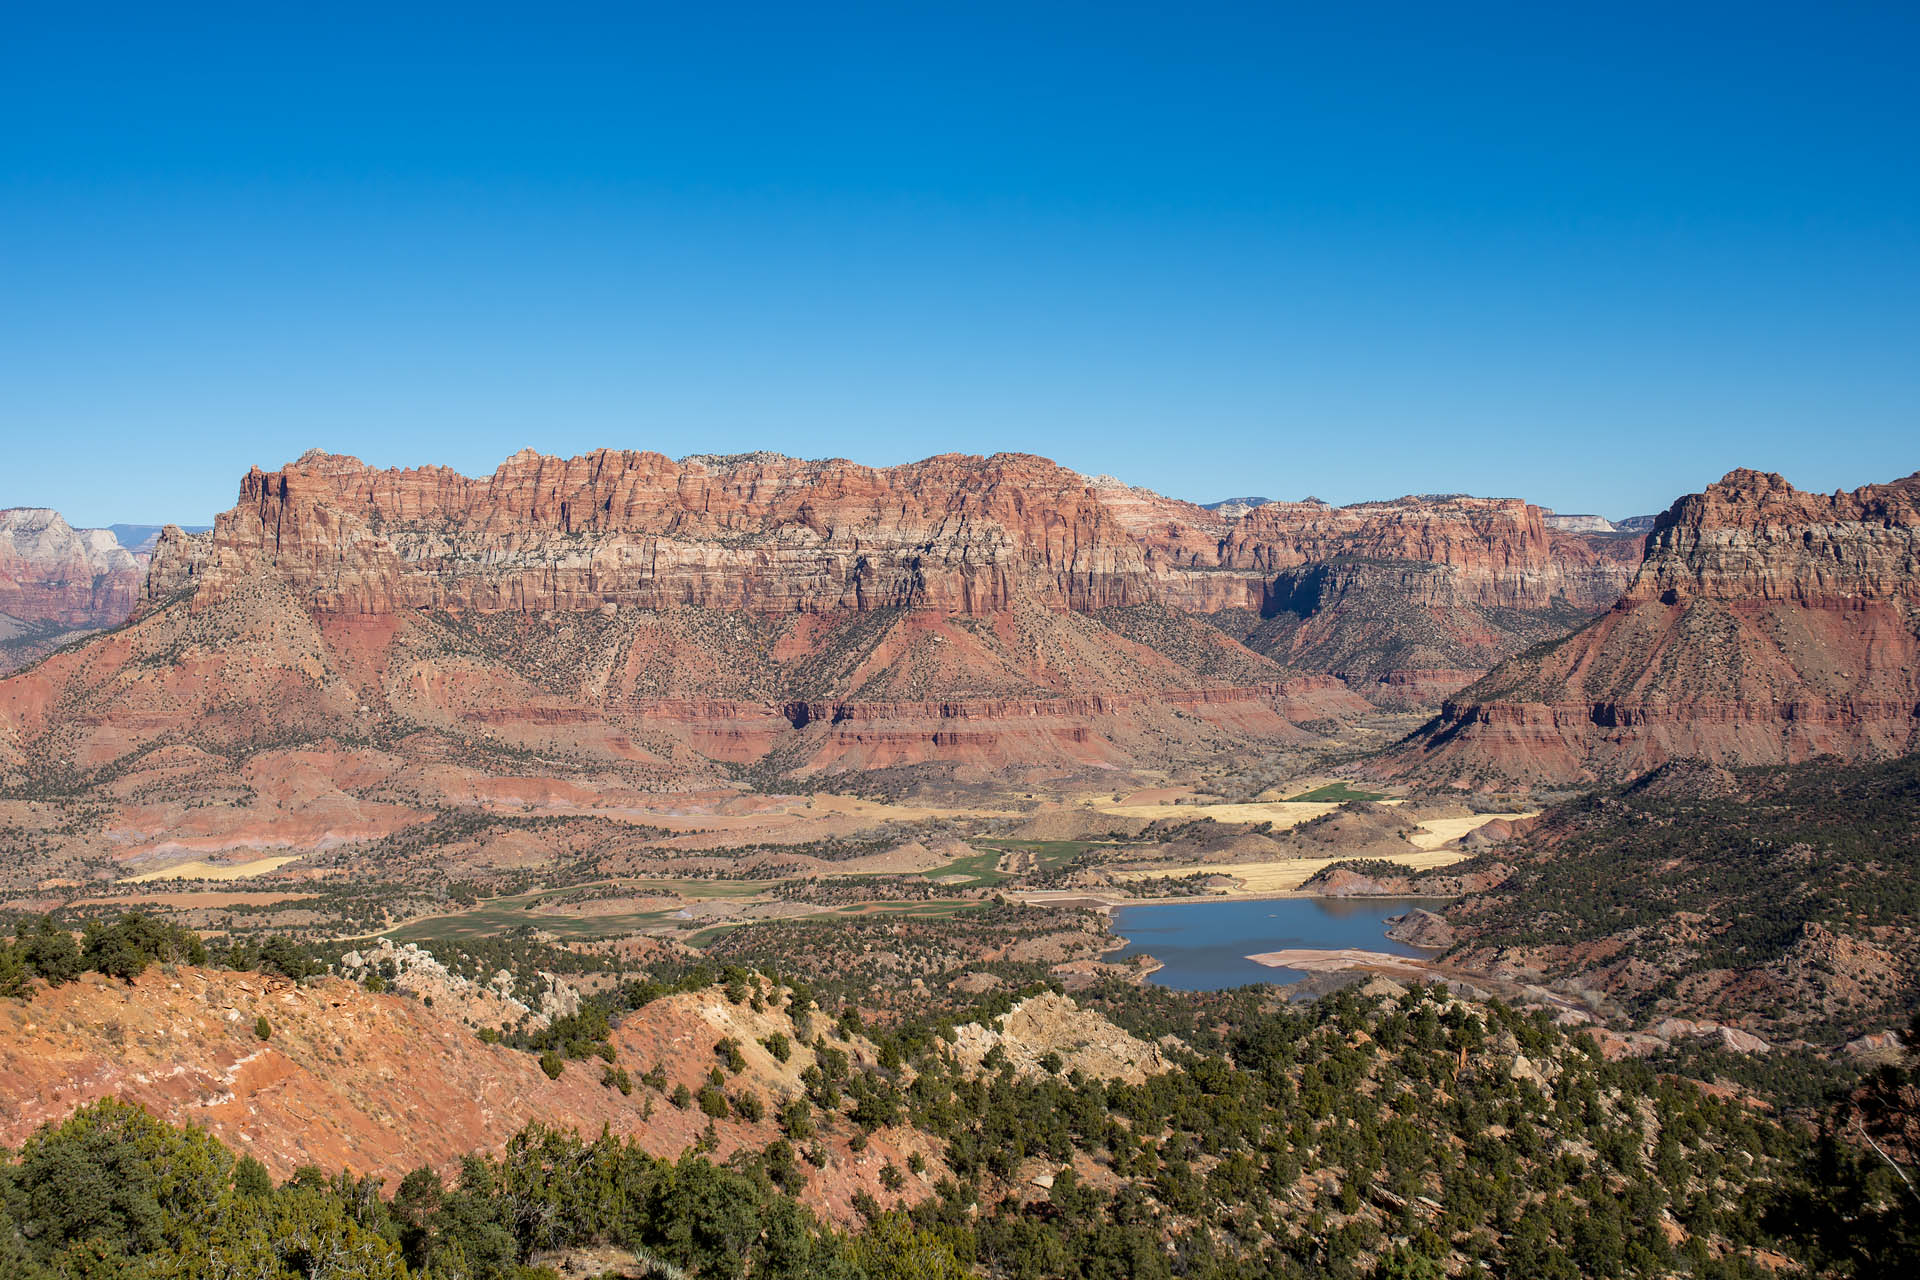 South Creek Reservoir & Parunuweap Canyon